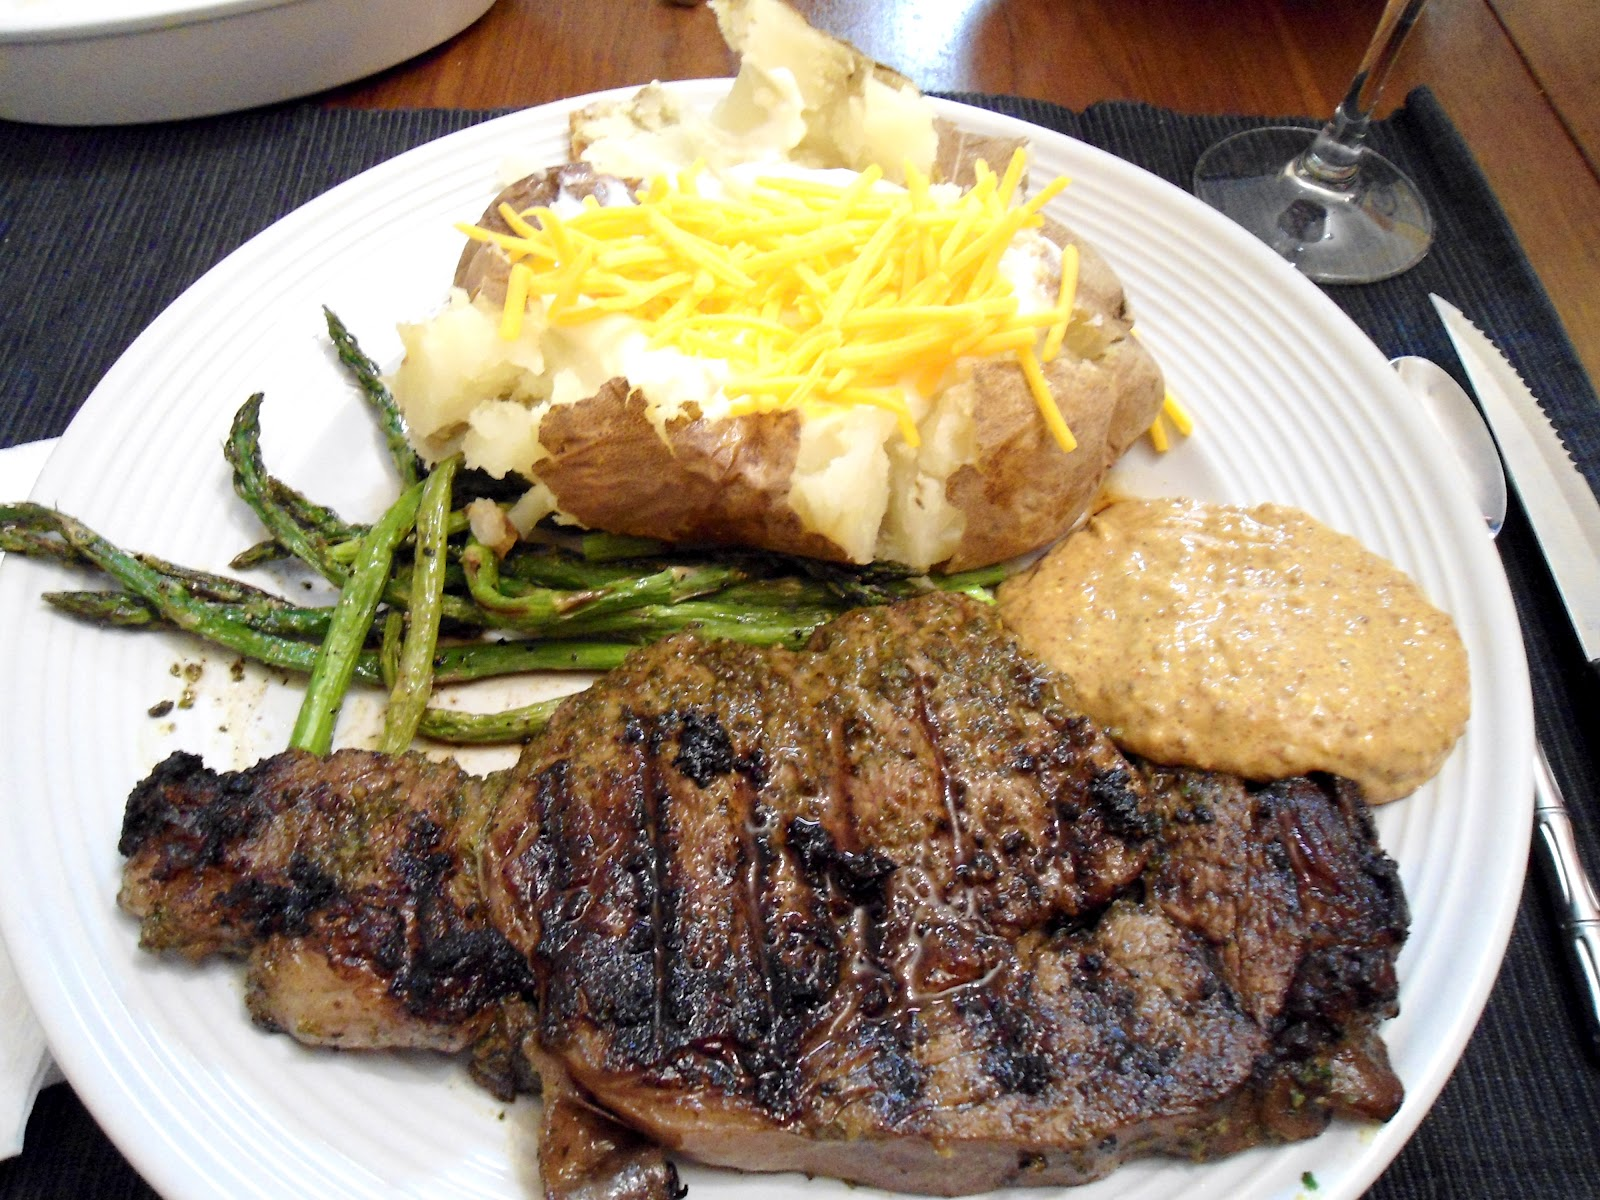 Serve With The Mustard Sauce, Asparagus And Baked Potatoes Yum It Was So  Good, I Seriously Ate The Entire Thing And Most Of The Baked Potato